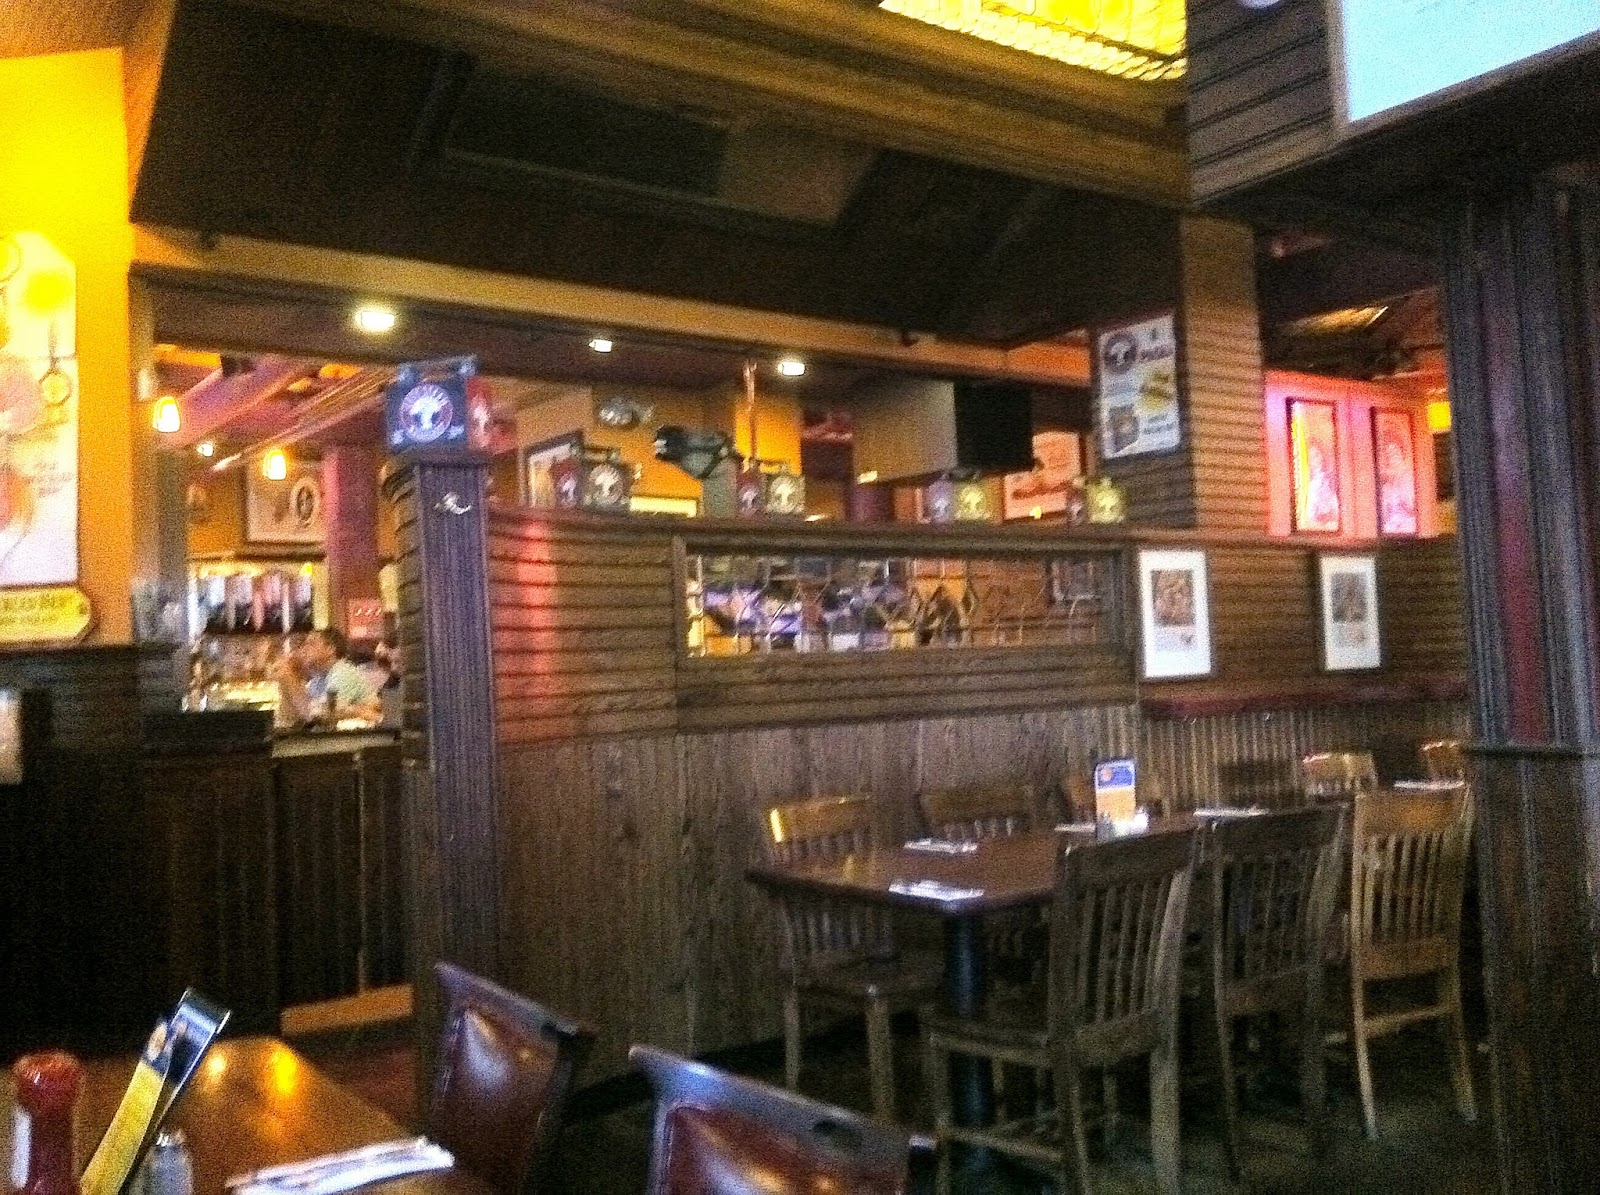 Beer and Comedy: City Steam Brewery and Cafe